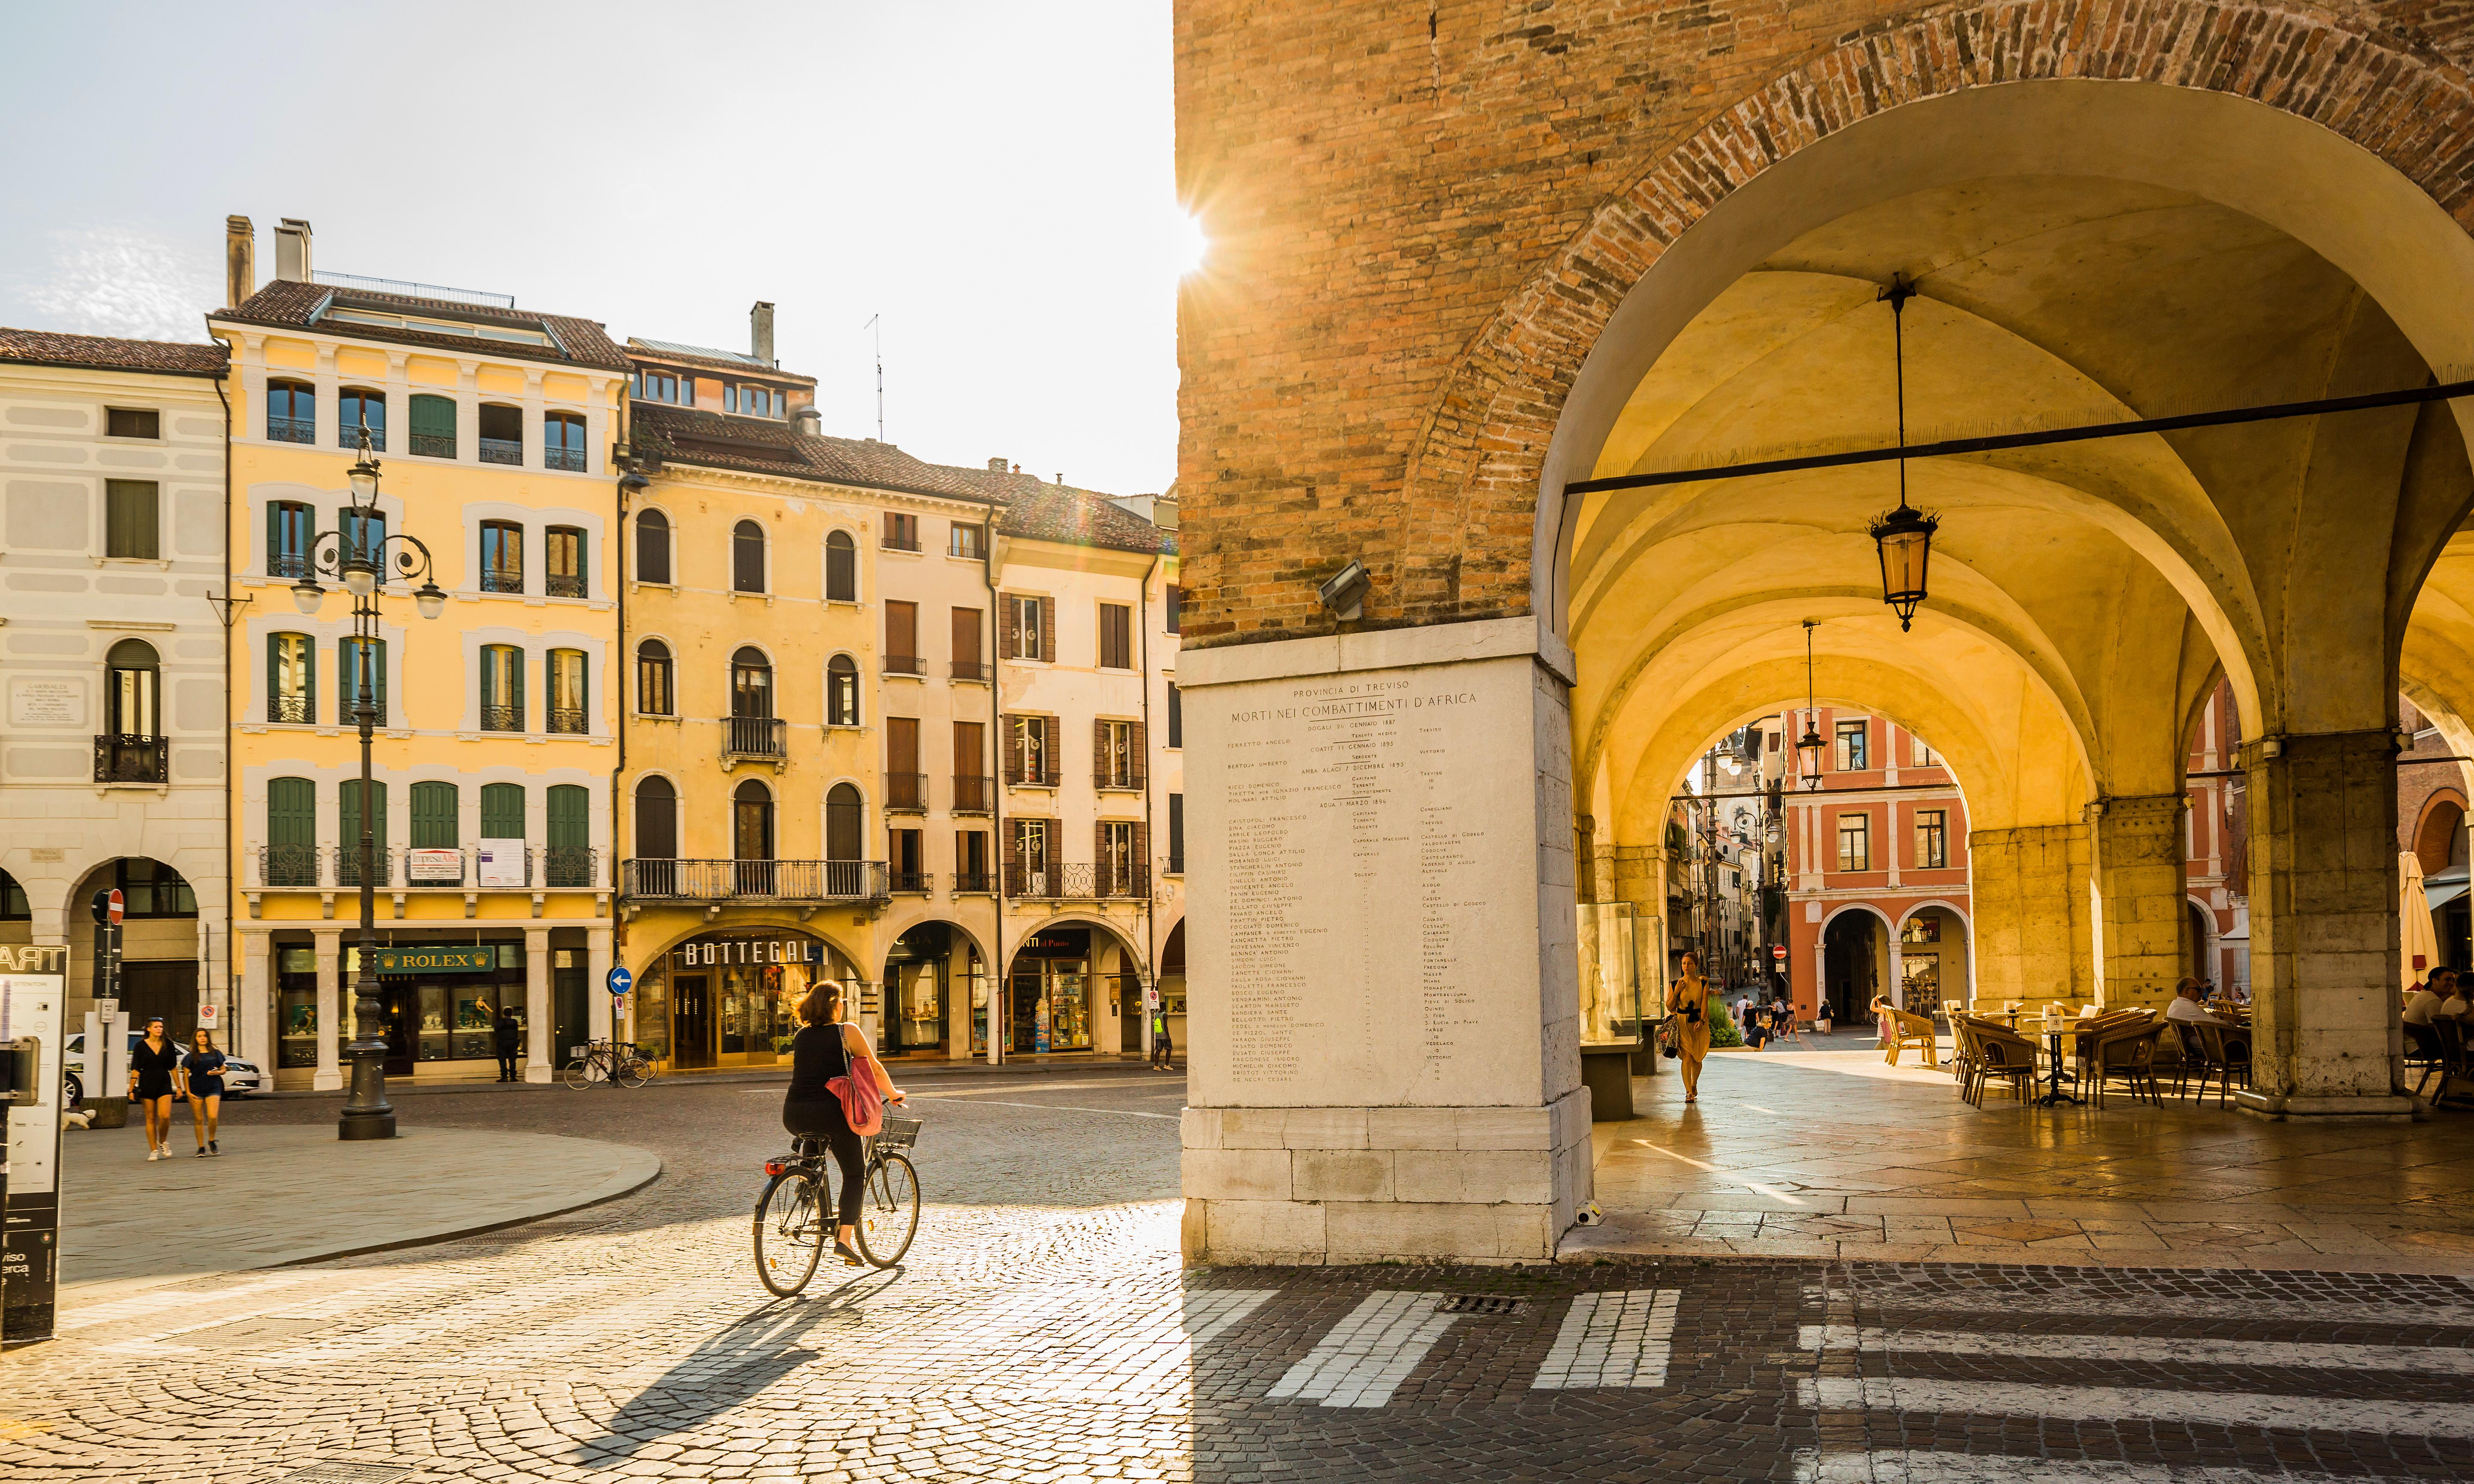 A local's guide to Treviso, Italy: 10 top tips